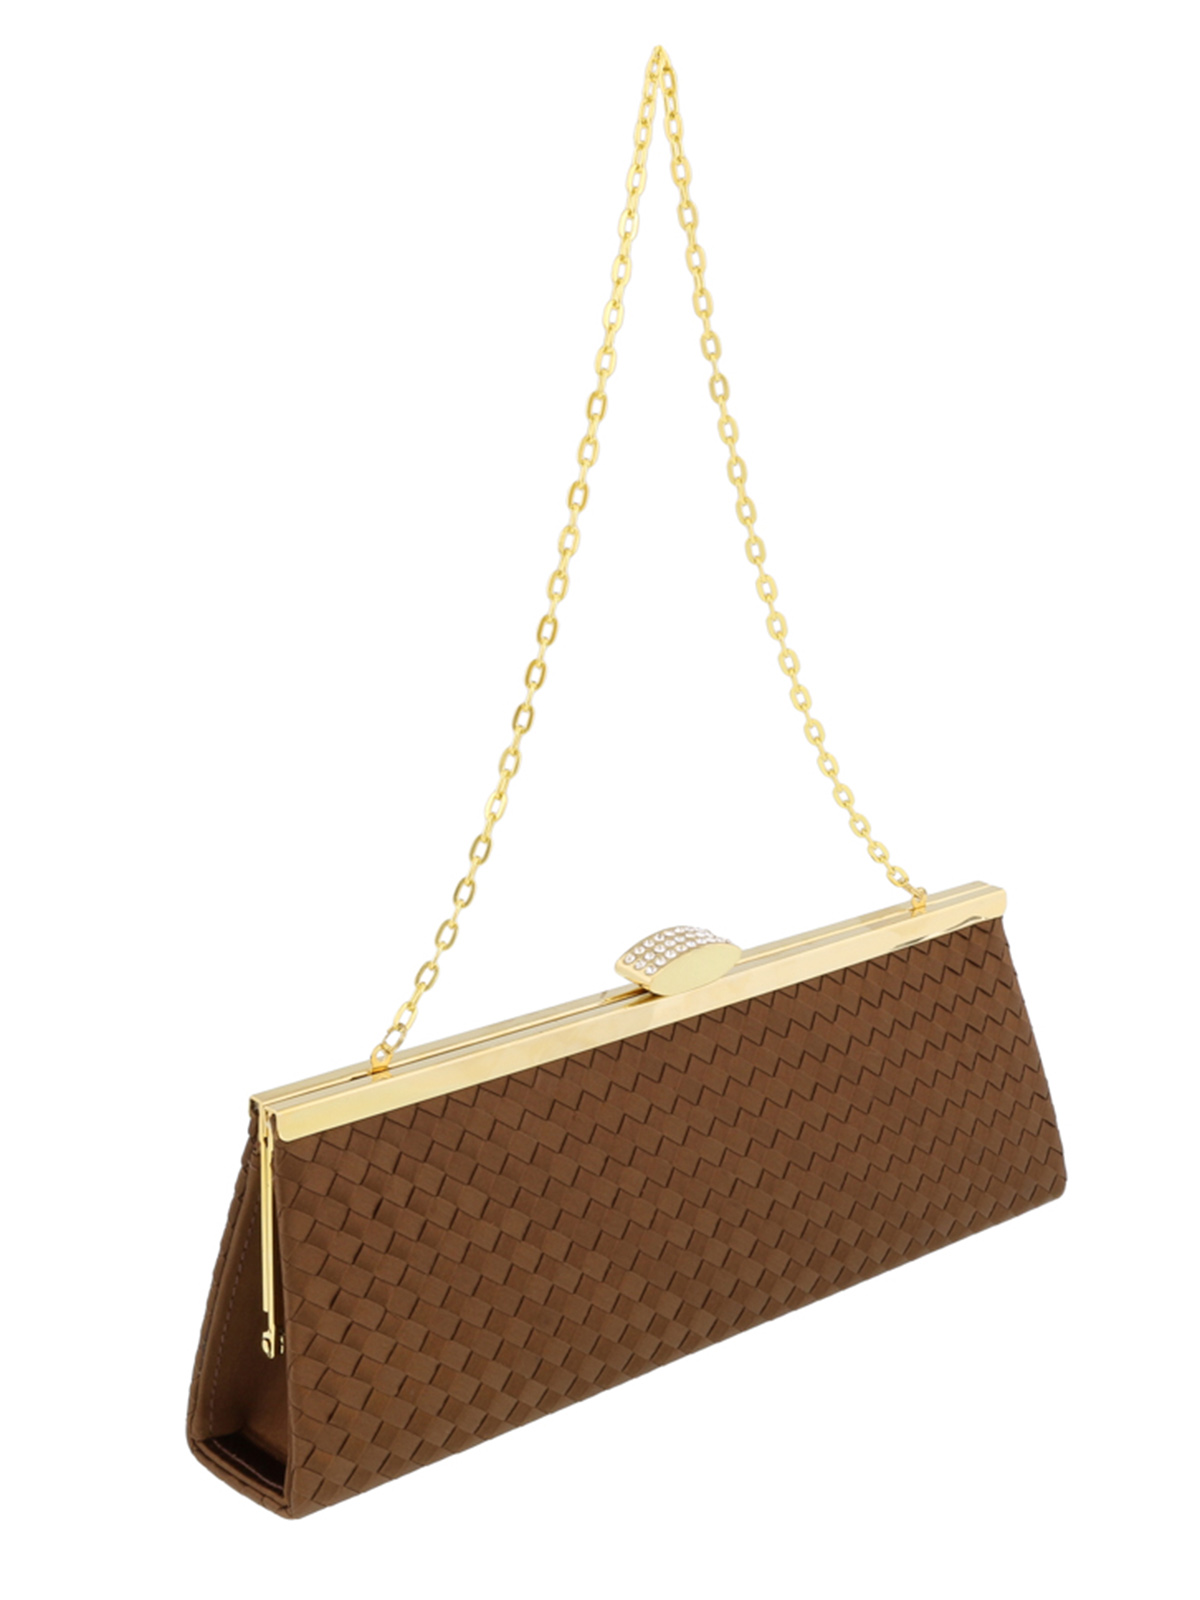 Scheilan  Brown Fabric Weave Clutch/Shoulder Bag